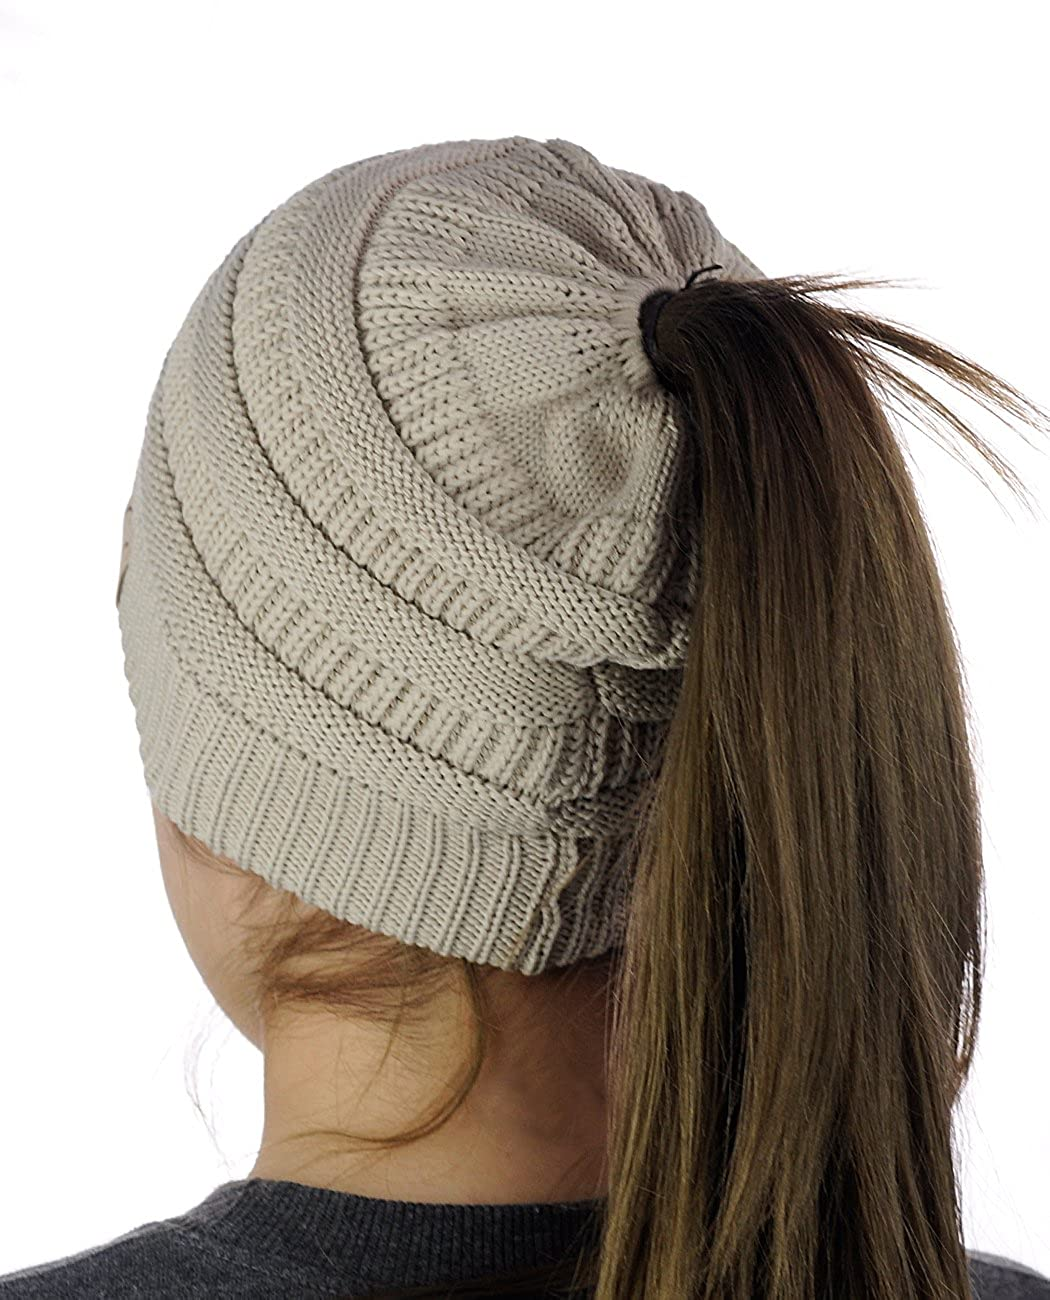 4c3d49db54f C.C BeanieTail Cotton Blend All Season Daily Messy High Bun Ponytail Beanie  Hat